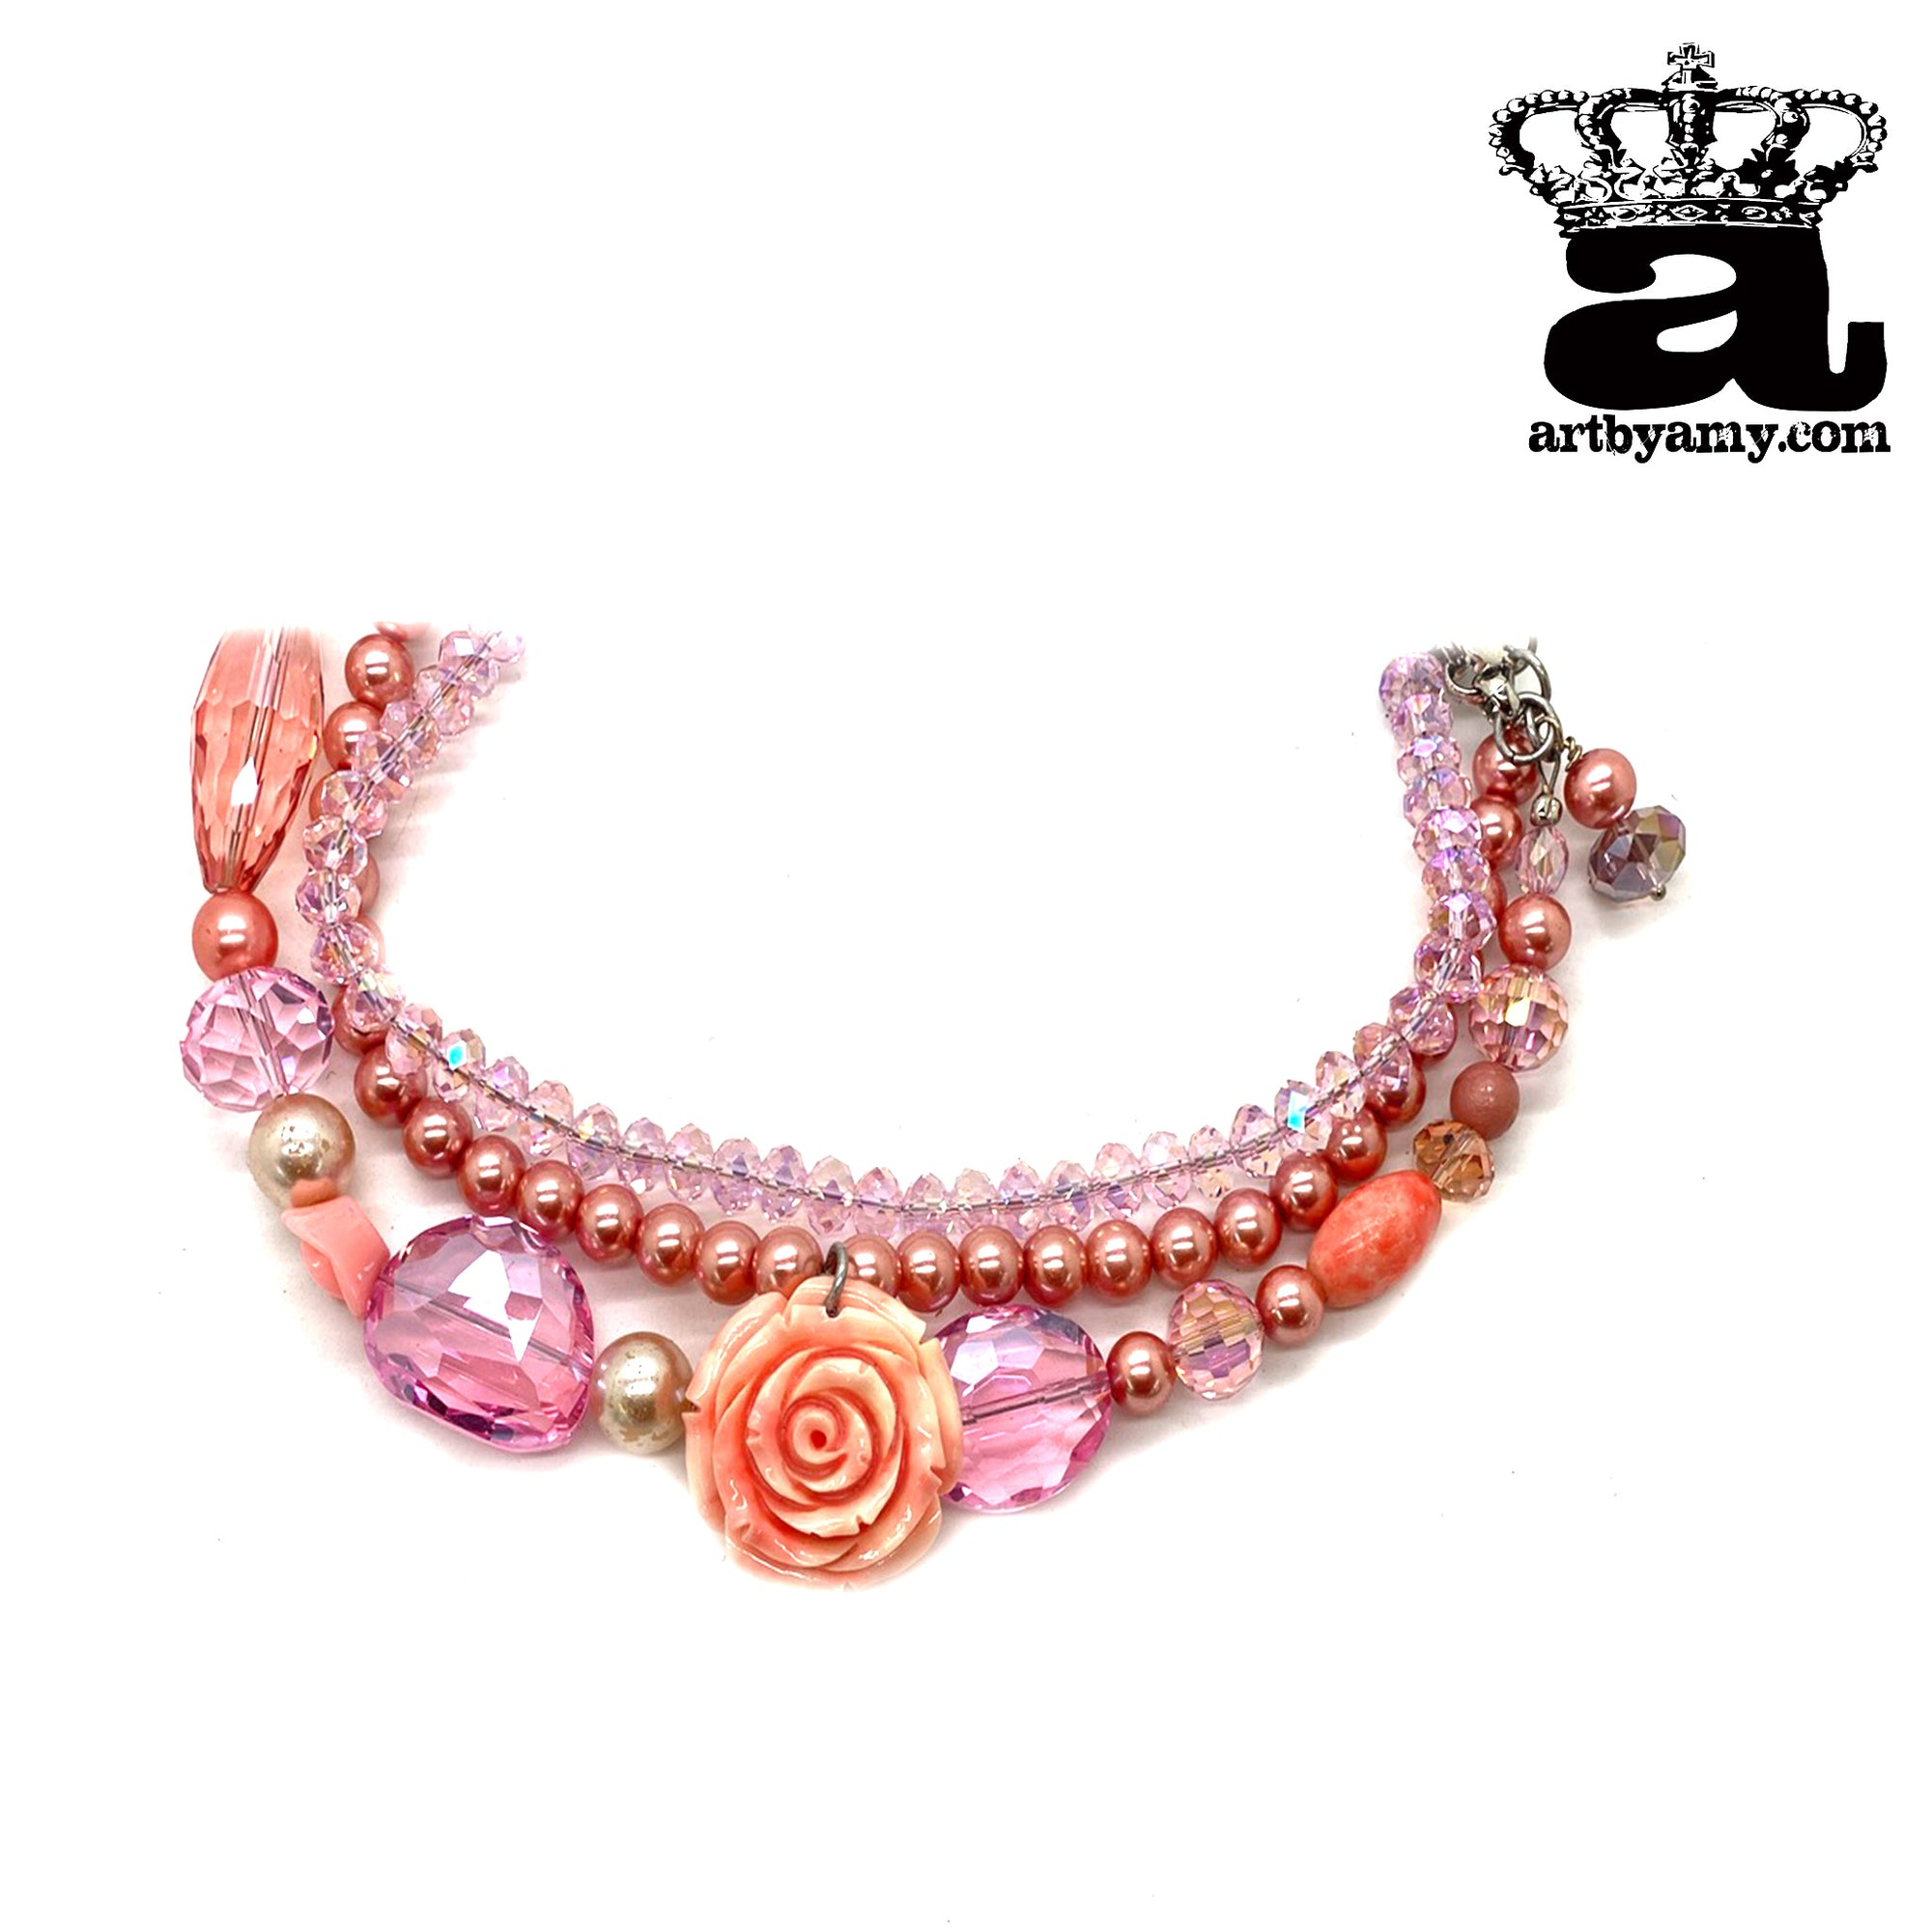 The Pinky Rosey Necklace